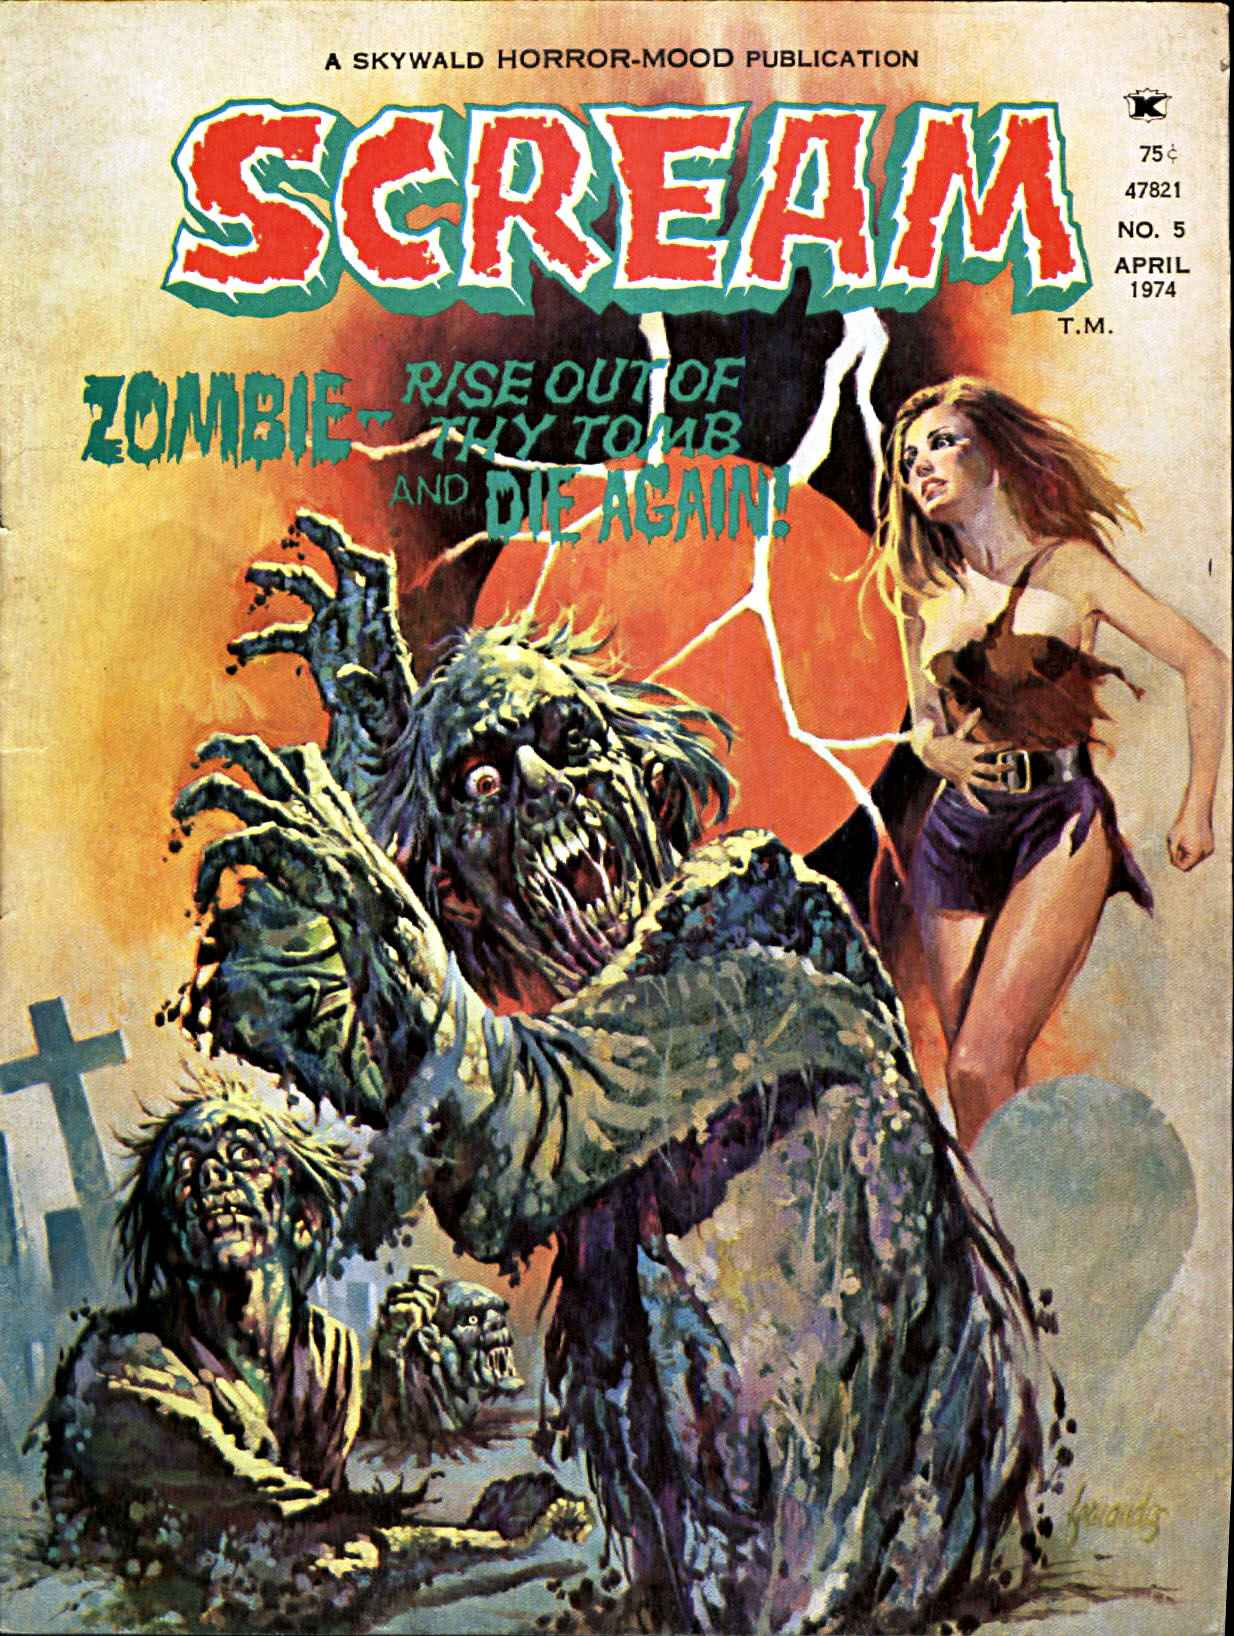 Scream Magazine, Issue 05, April 1974